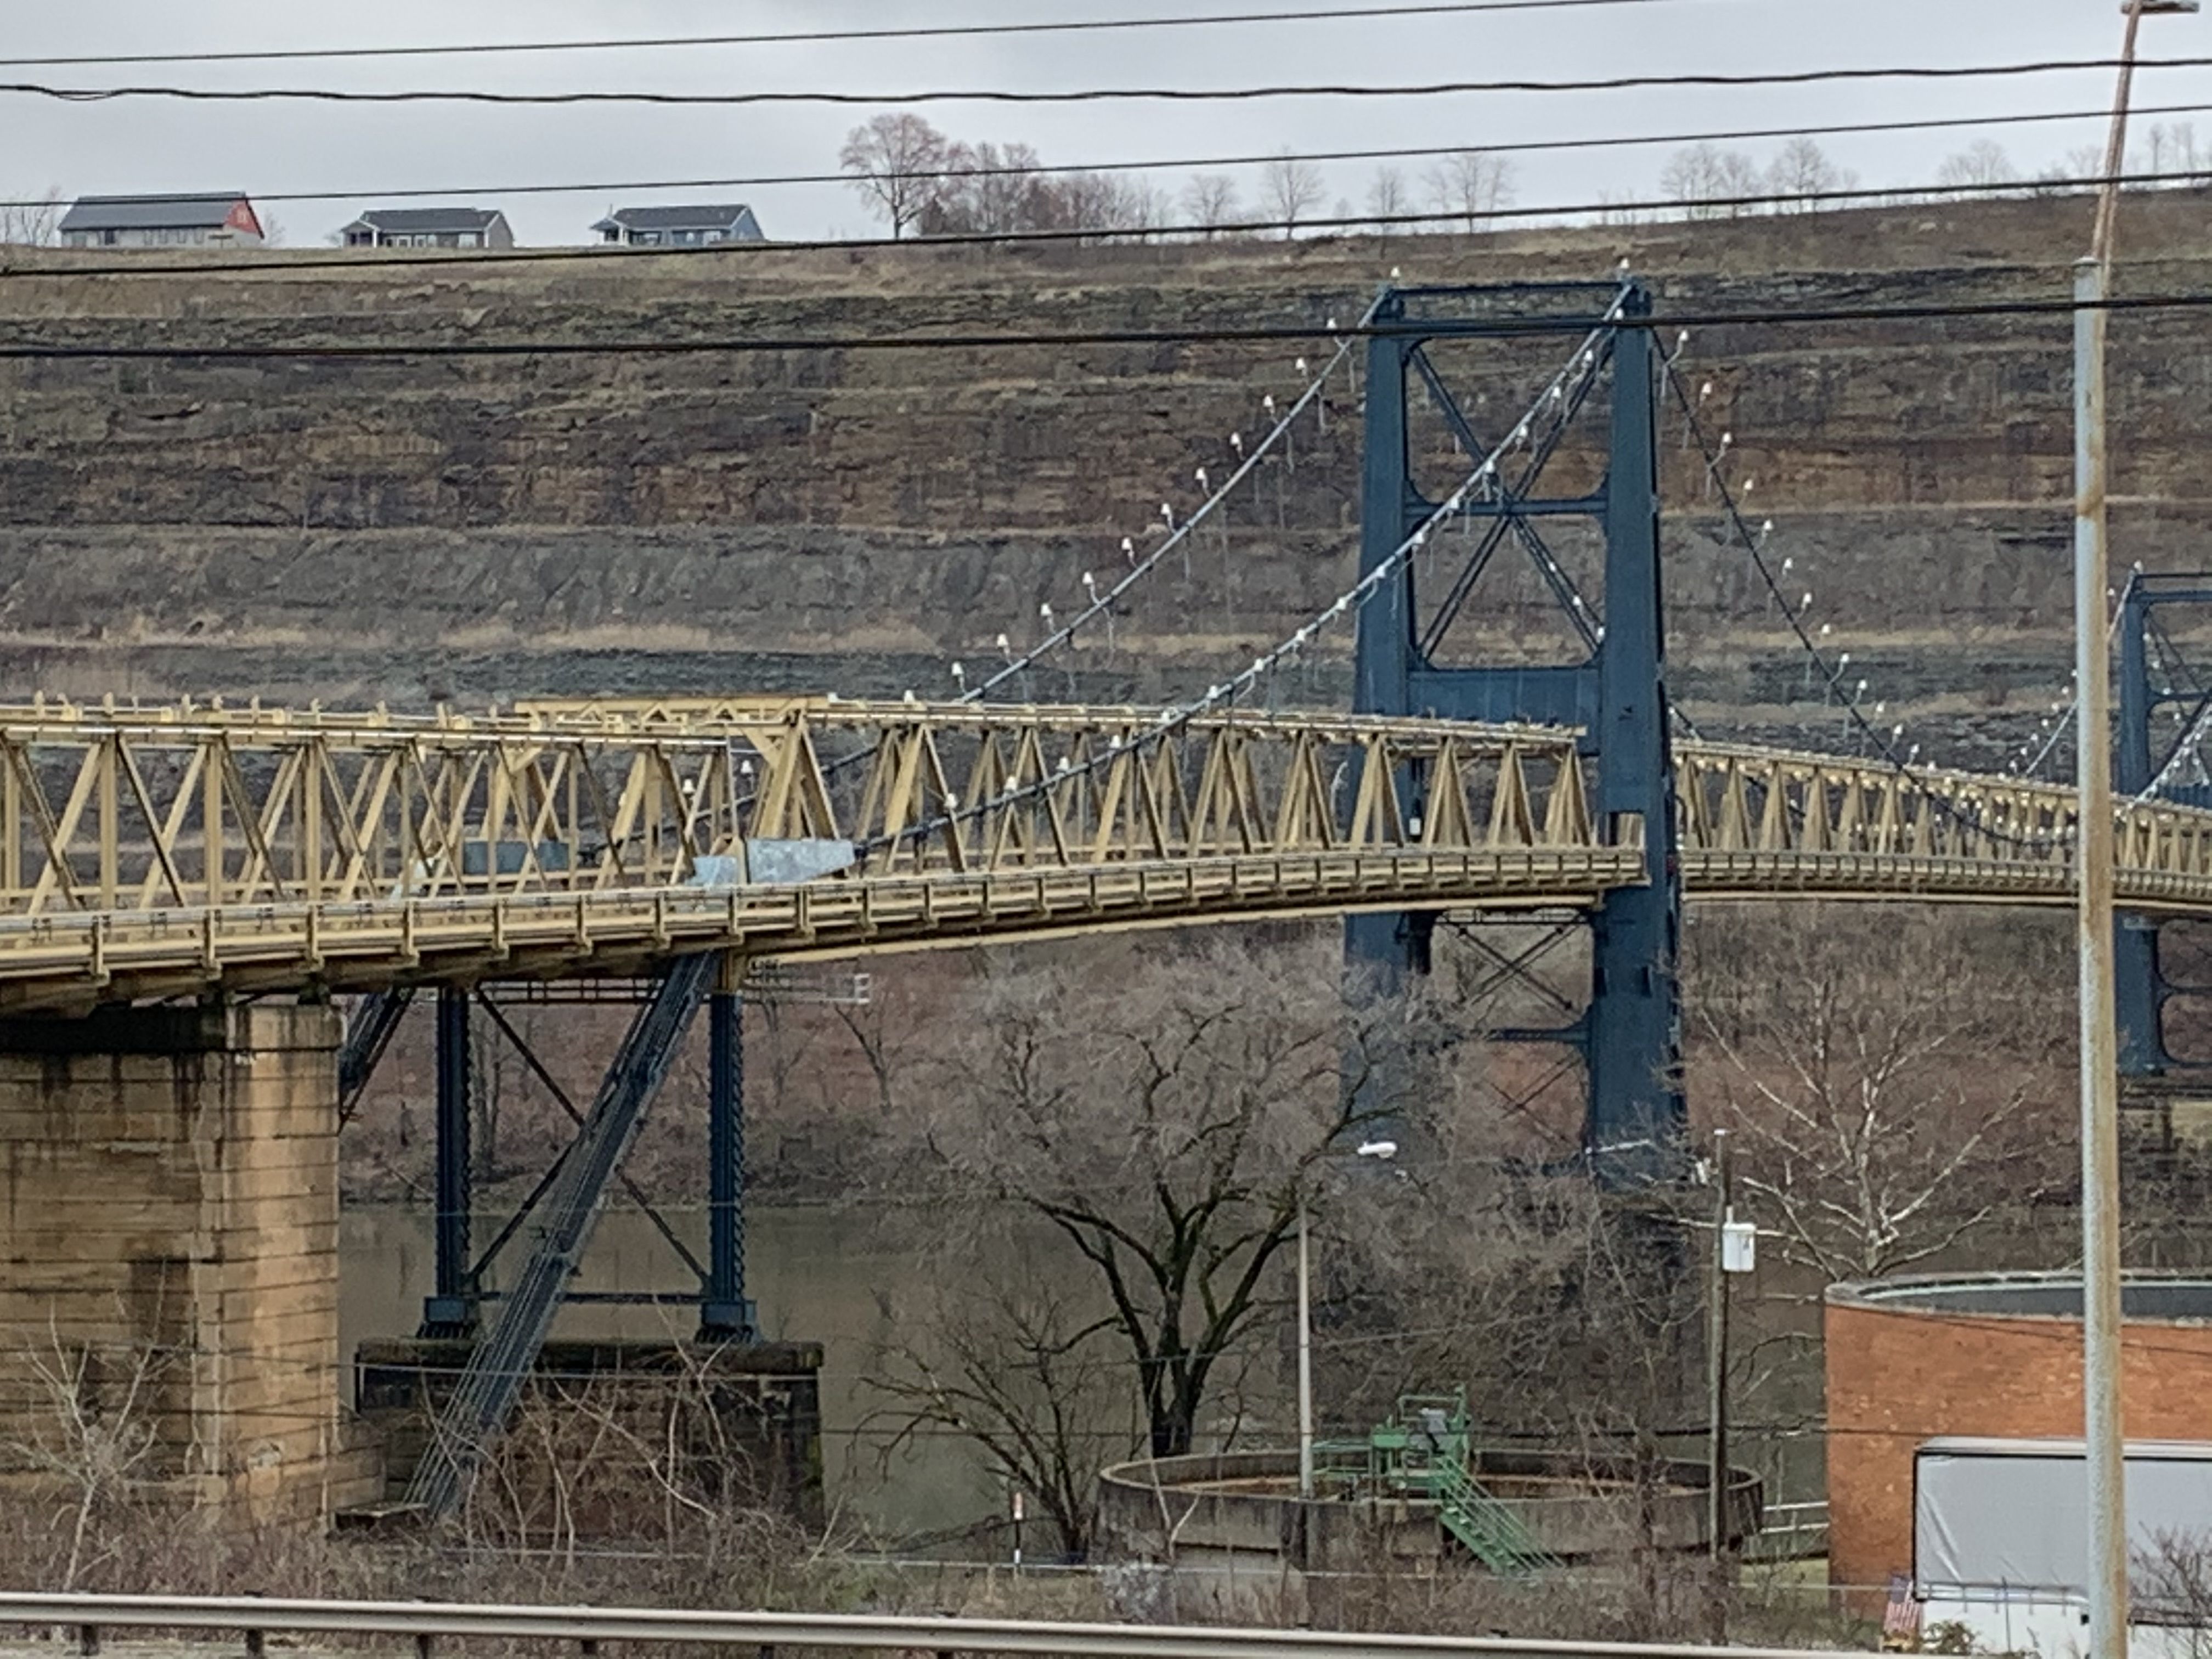 Study : Trail from Cleveland to Pittsburgh could be economic boost | News , Sports , Jobs